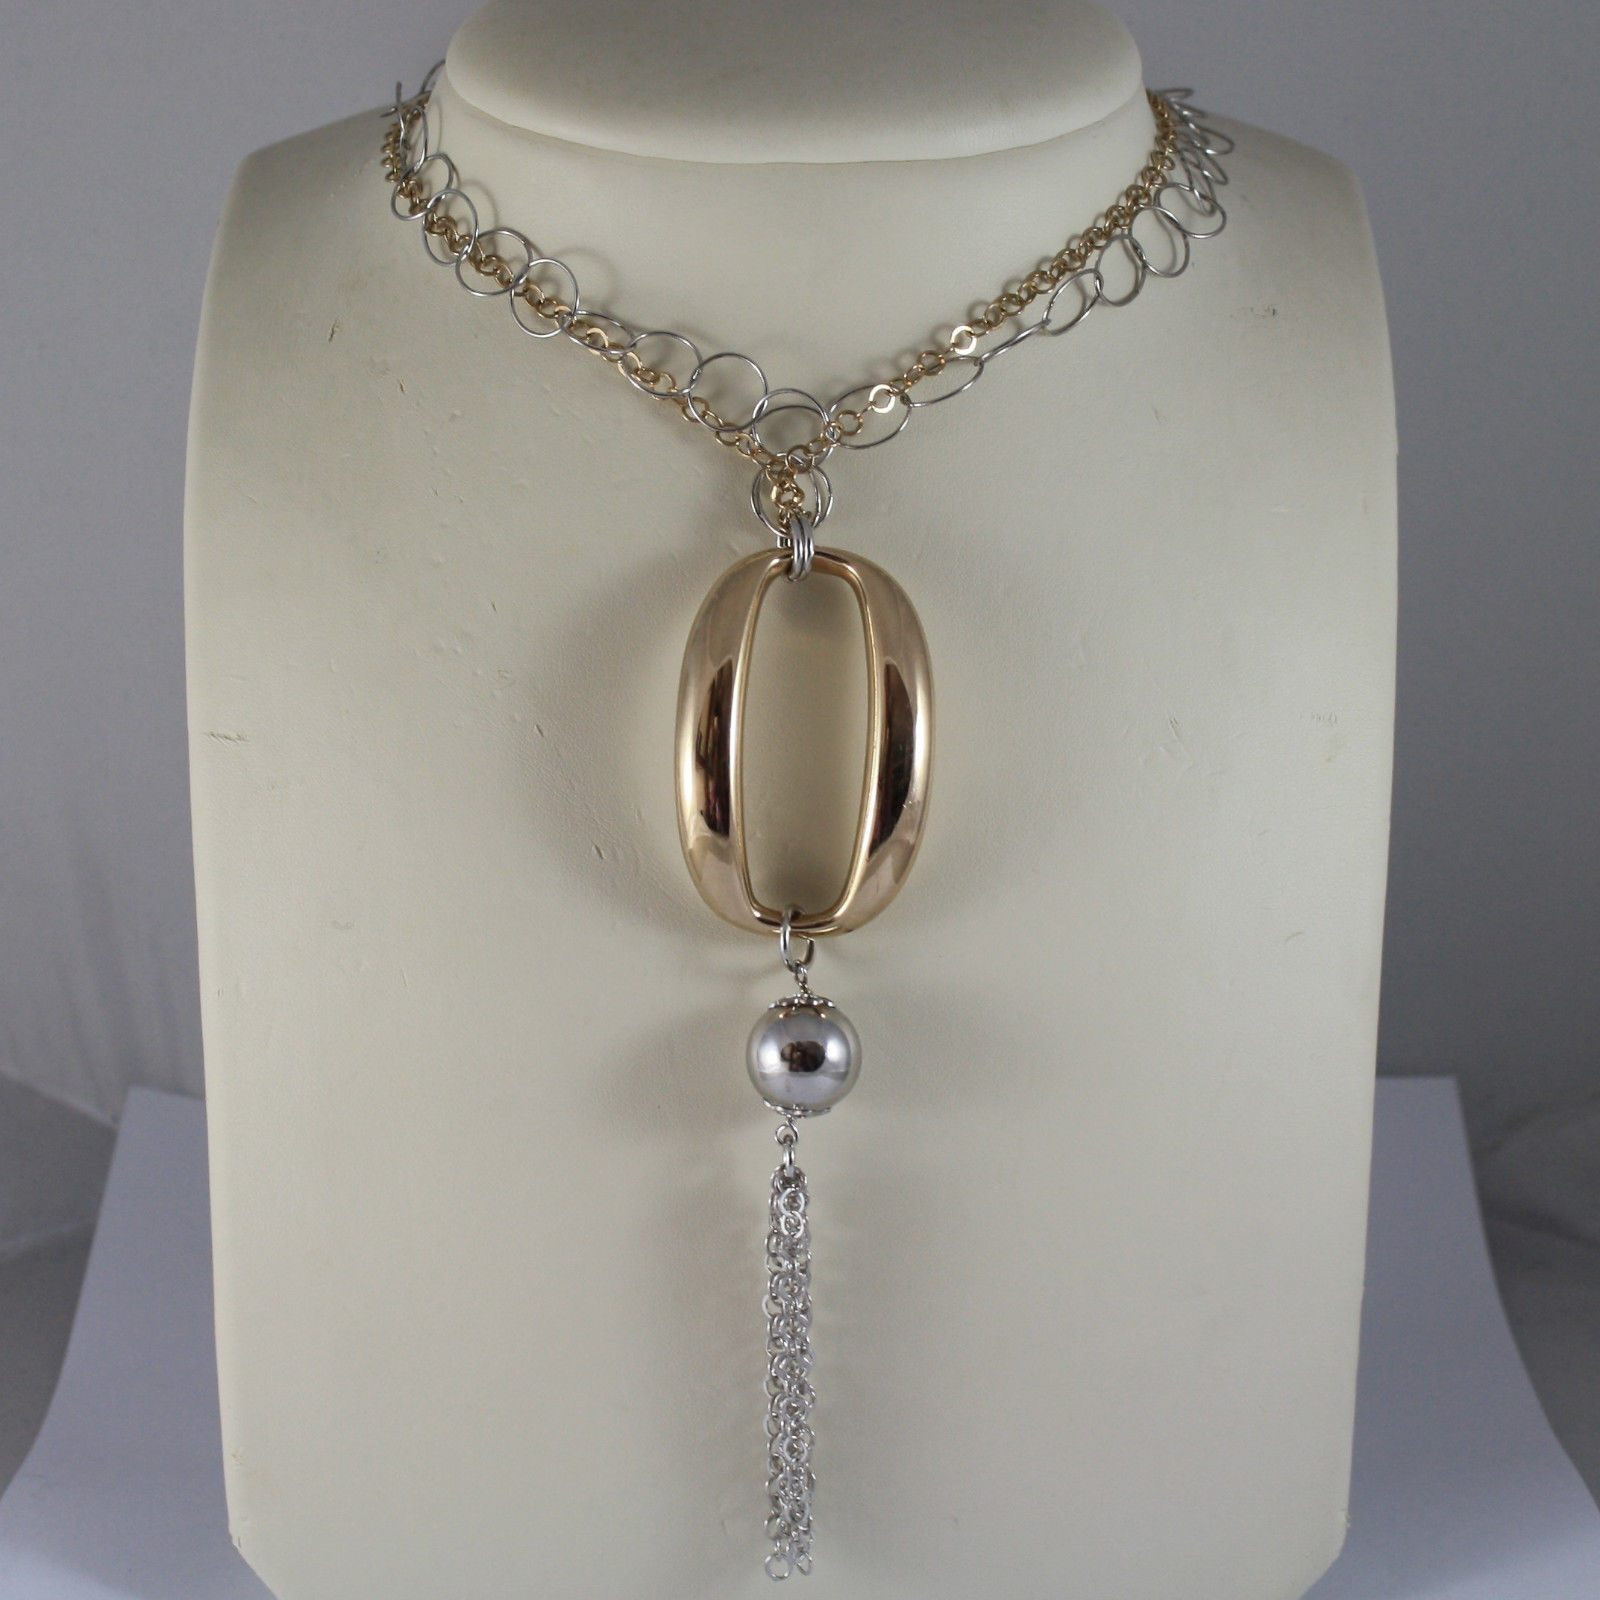 .925 RHODIUM SILVER YELLOW GOLD PLATED, MULTI STRAND NECKLACE WITH OVAL AND BALL